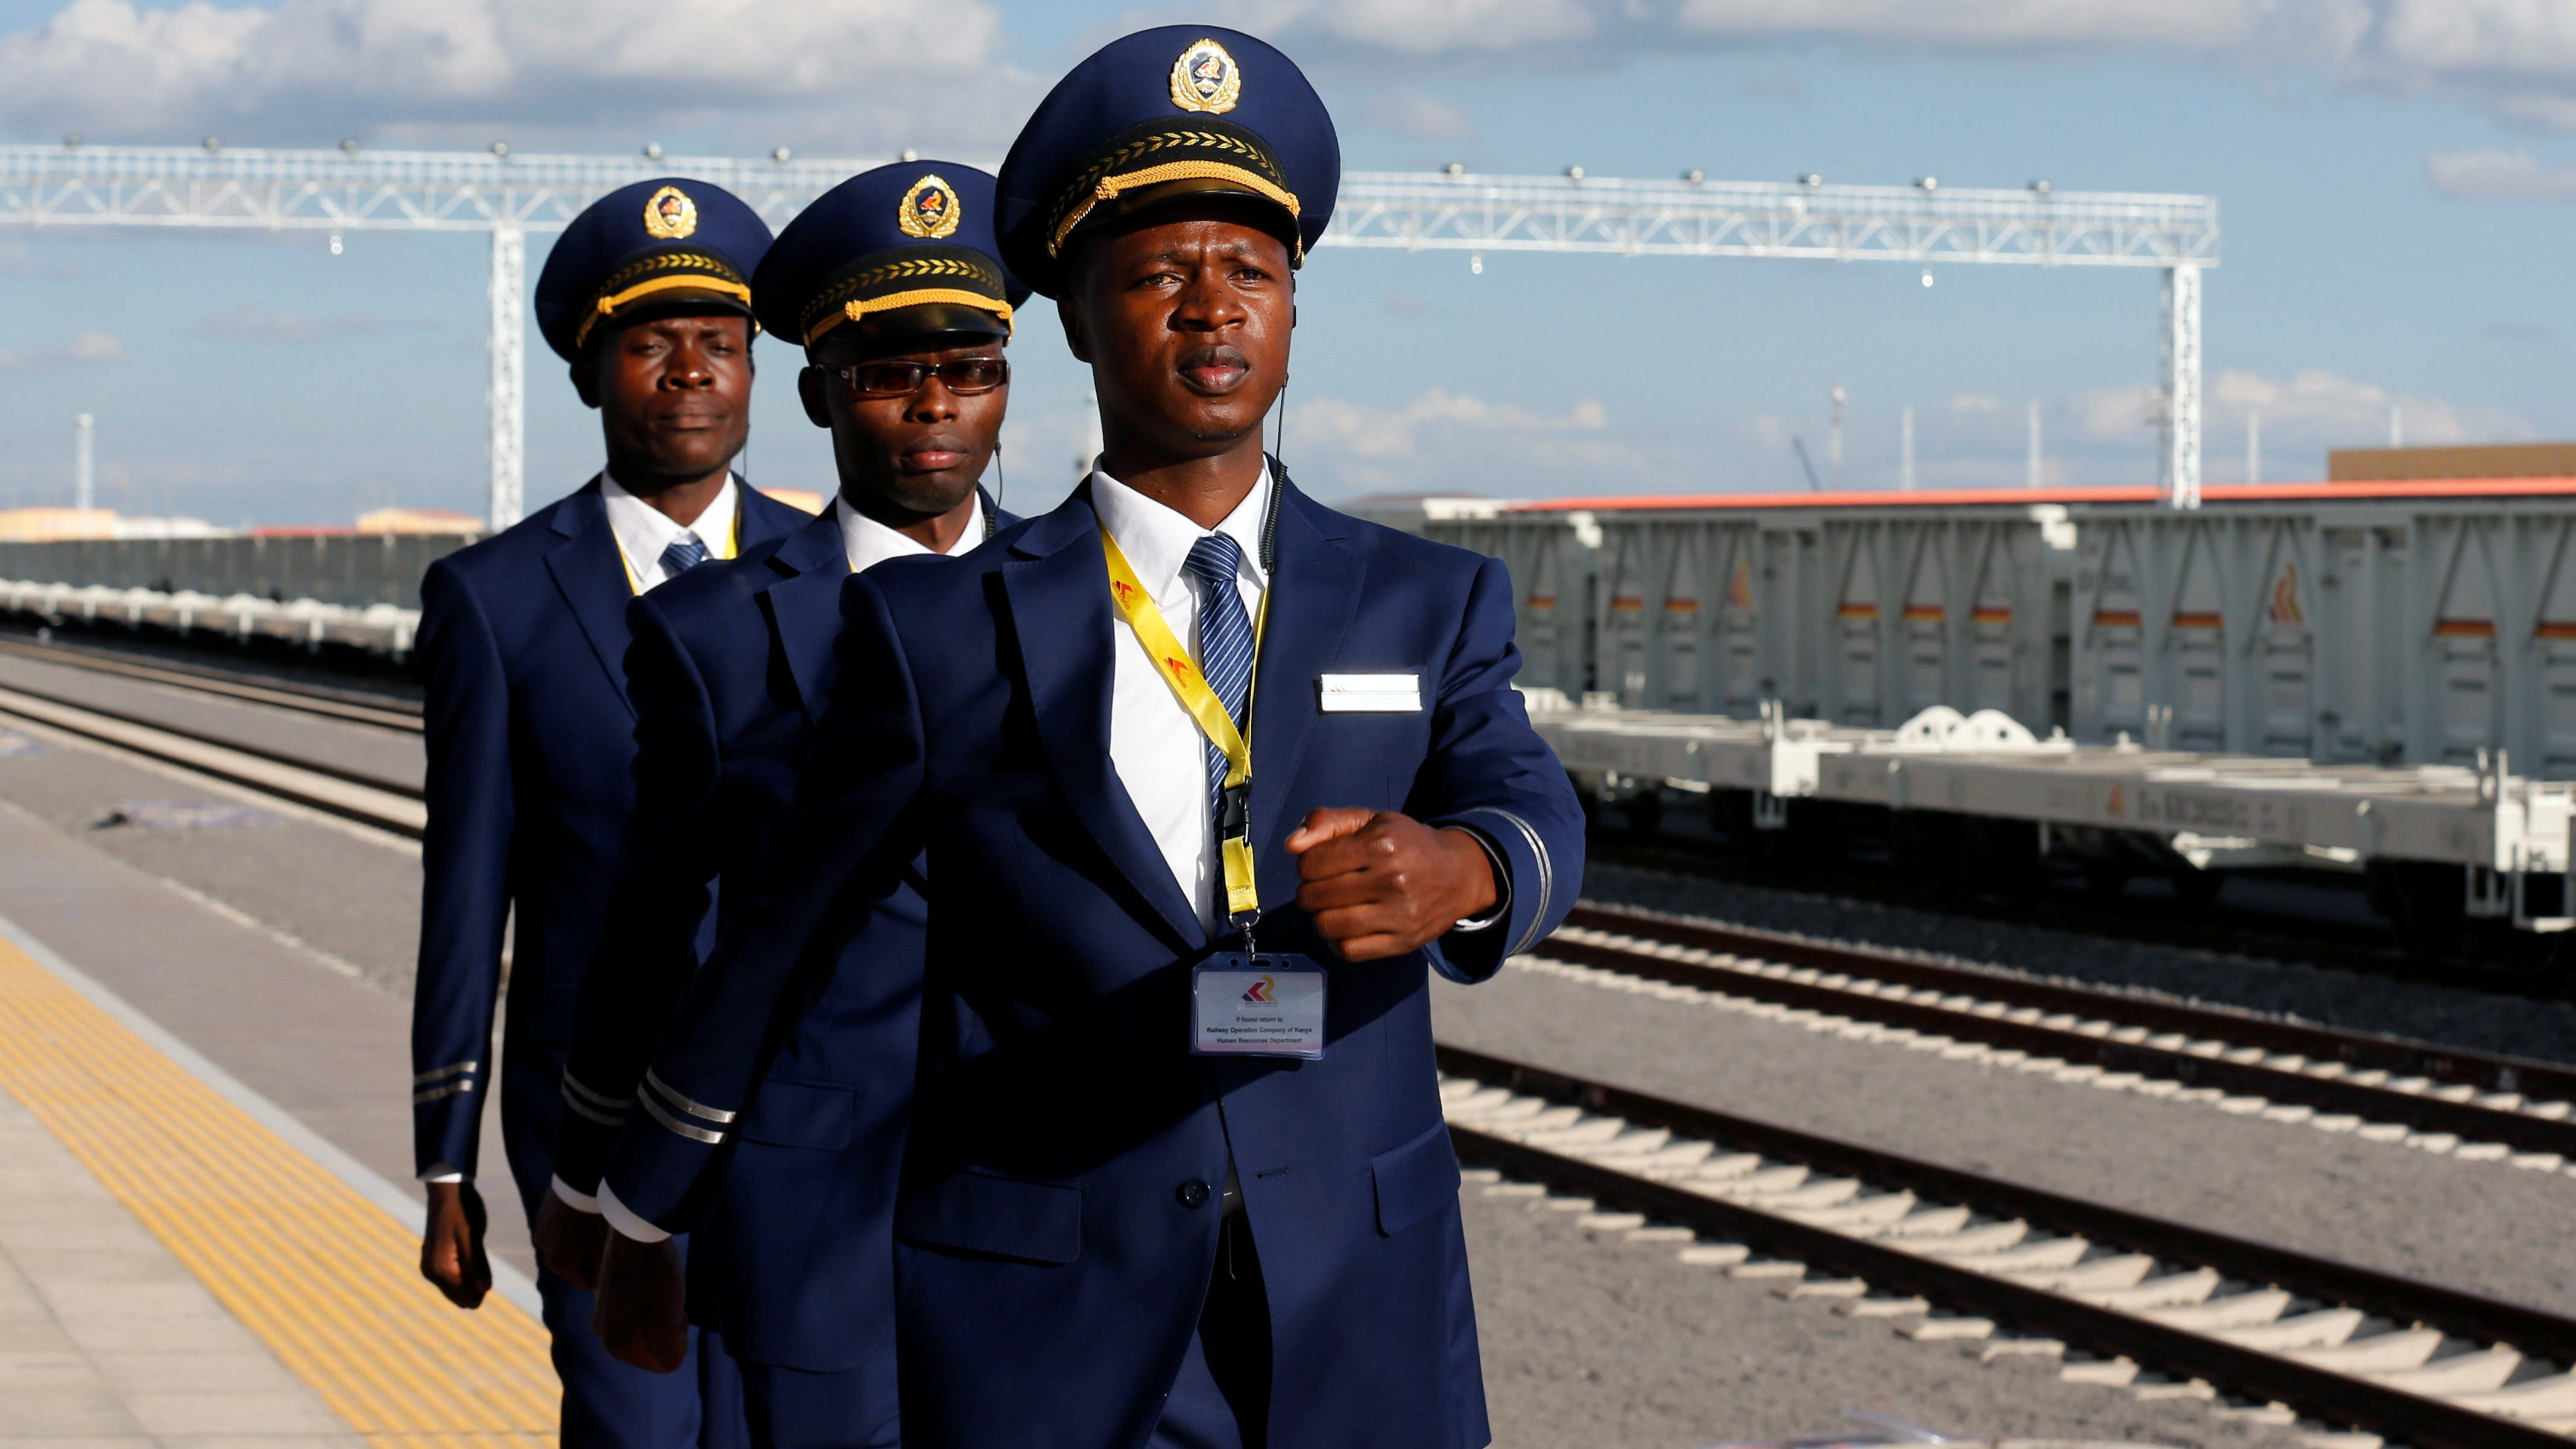 Kenya Railways attendants prepare to receive a train launched to operate on the Standard Gauge Railway (SGR) line constructed by the China Road and Bridge Corporation (CRBC) and financed by Chinese government at the Nairobi Terminus in the outskirts of Kenya's capital Nairobi May 31, 2017.